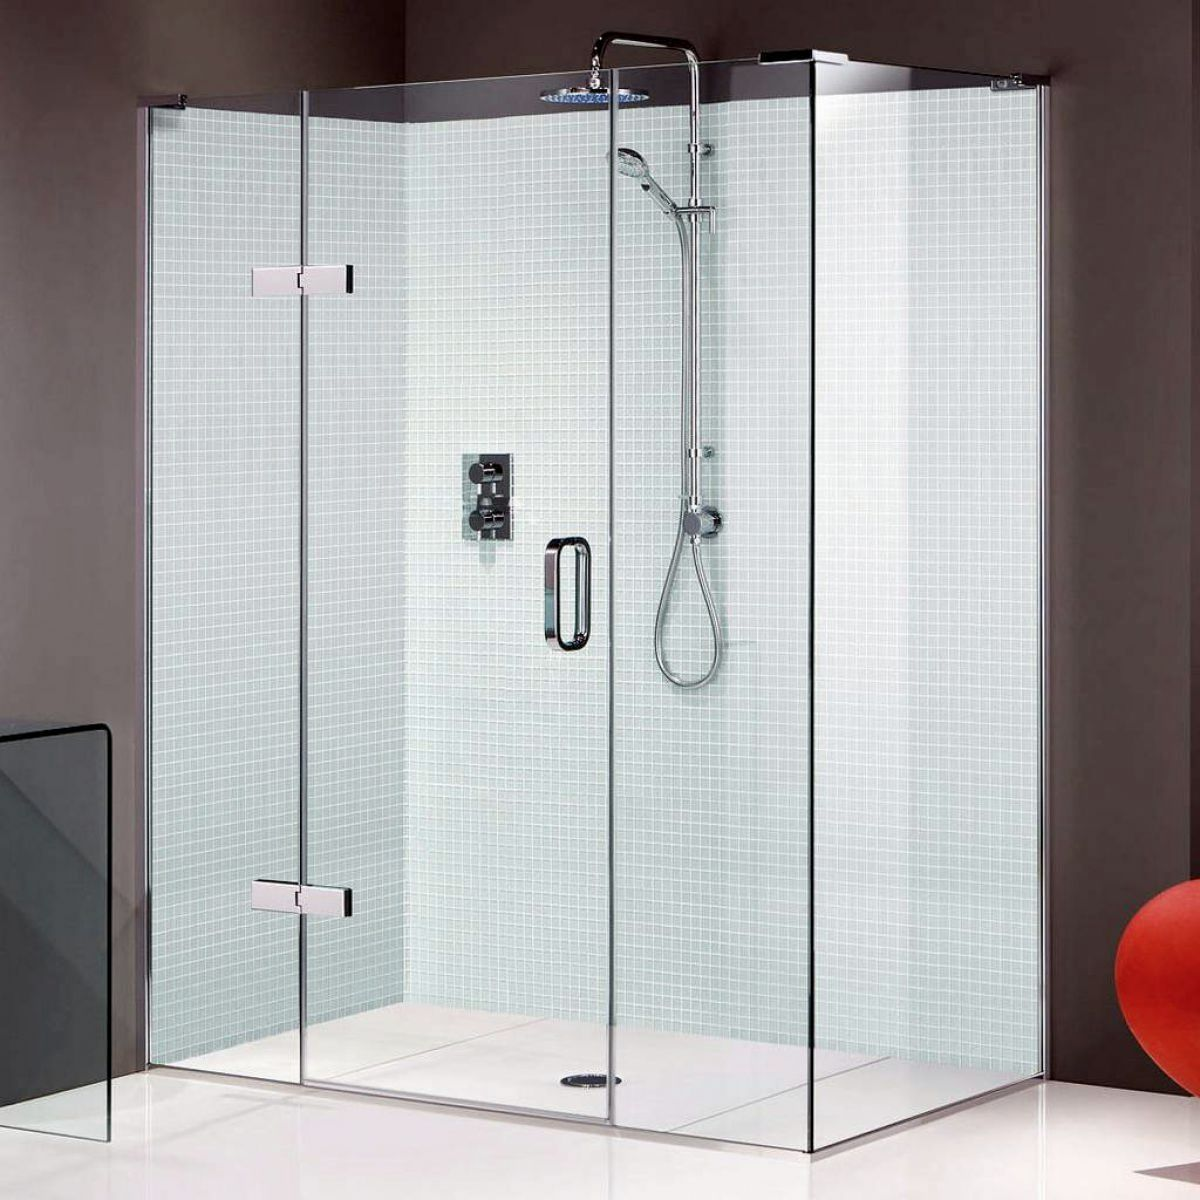 Matki Eauzone Plus Hinged Shower Door With Hinge And